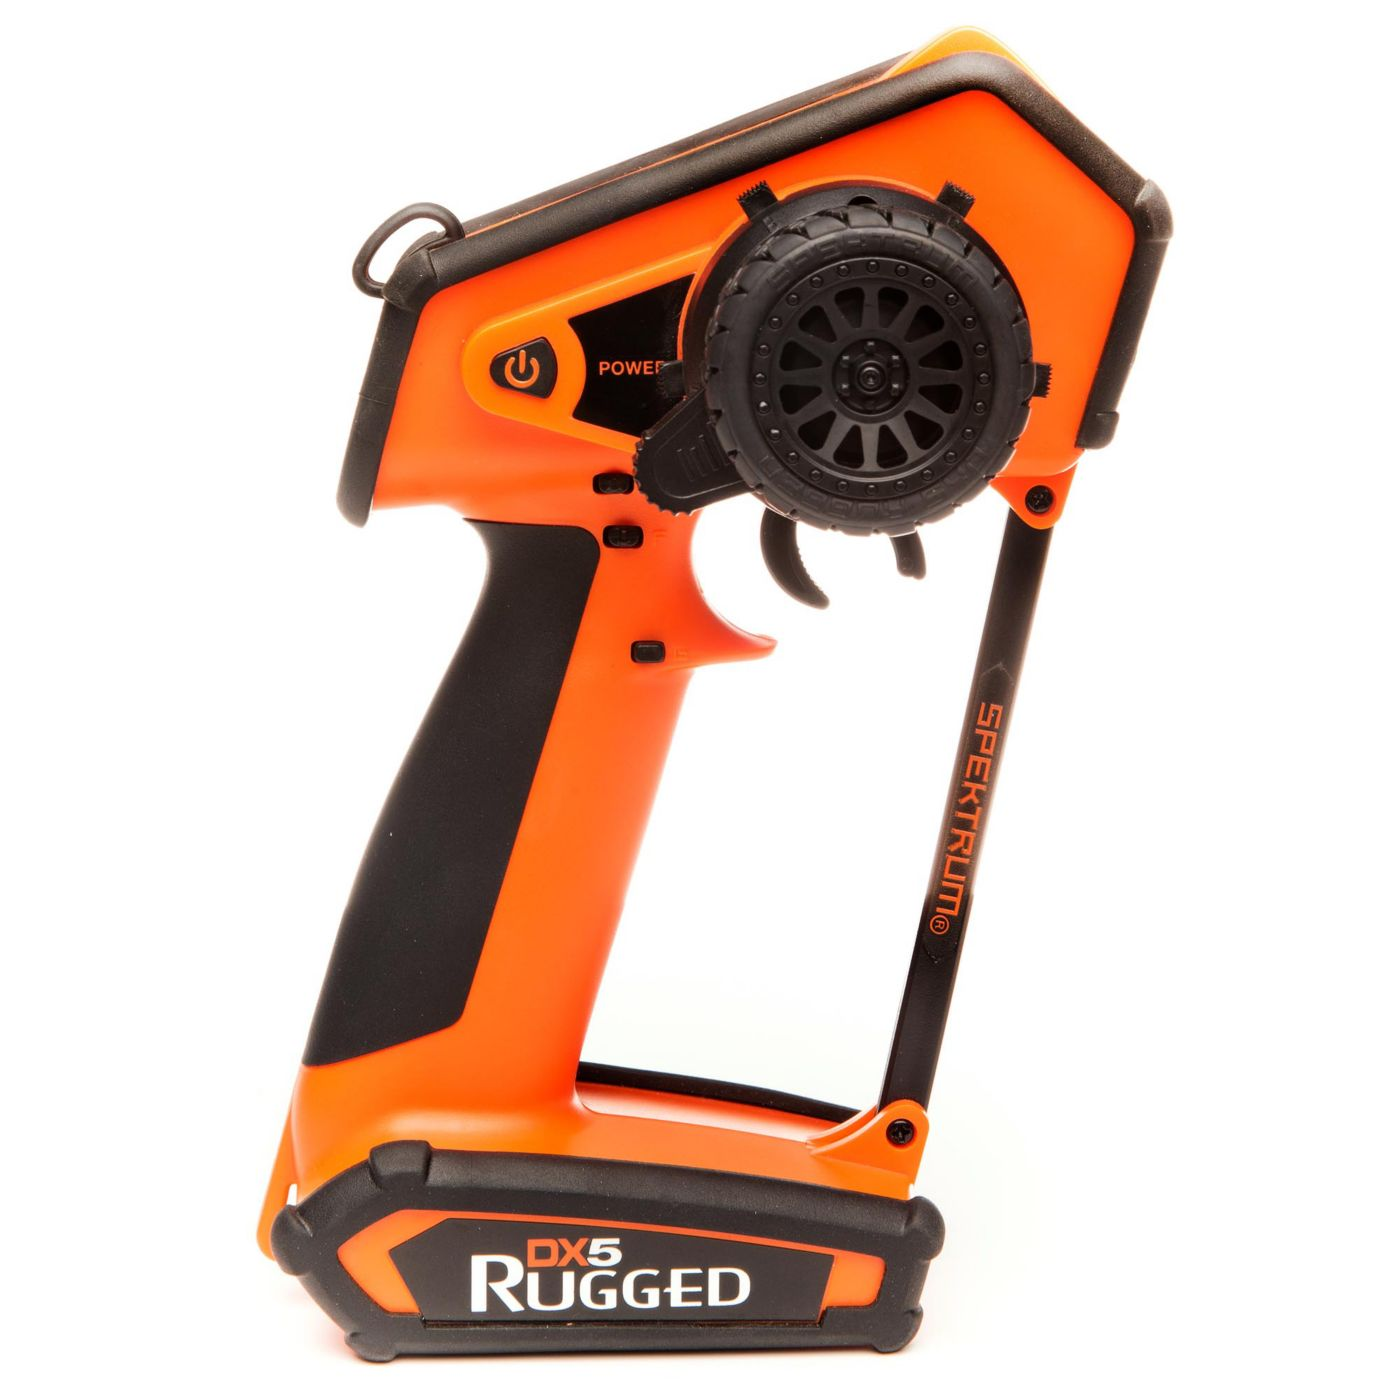 Spektrum DX5 Rugged DSMR TX Only, Orange